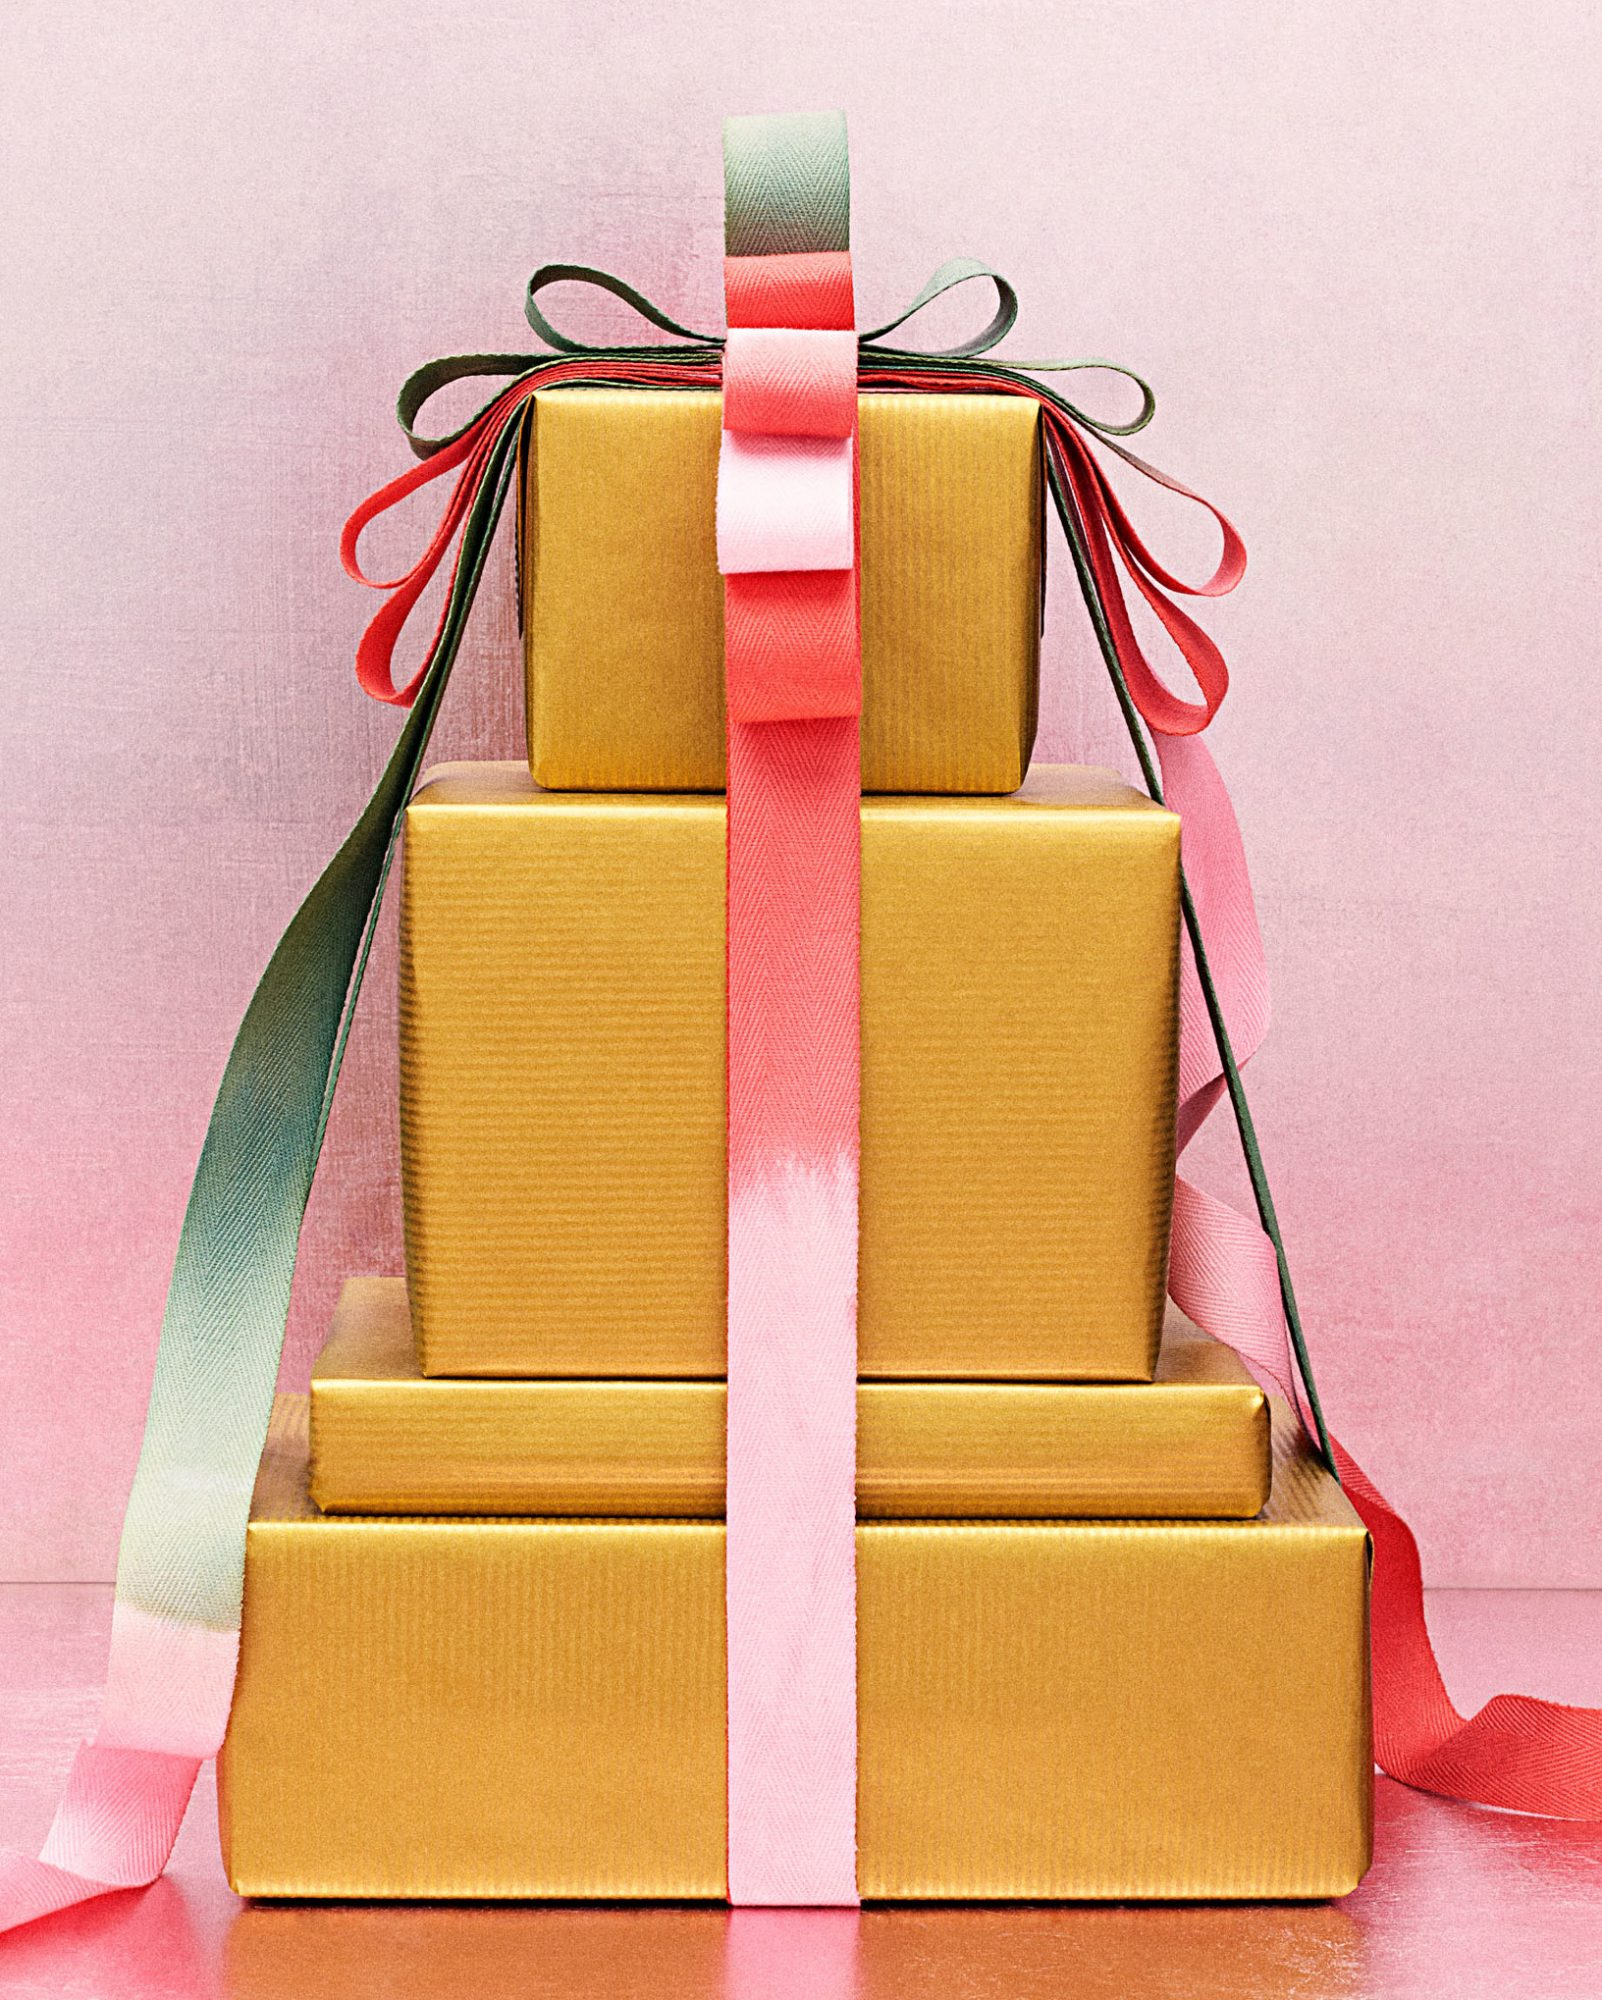 dip-dyed ribbon on gift-wrapped packages